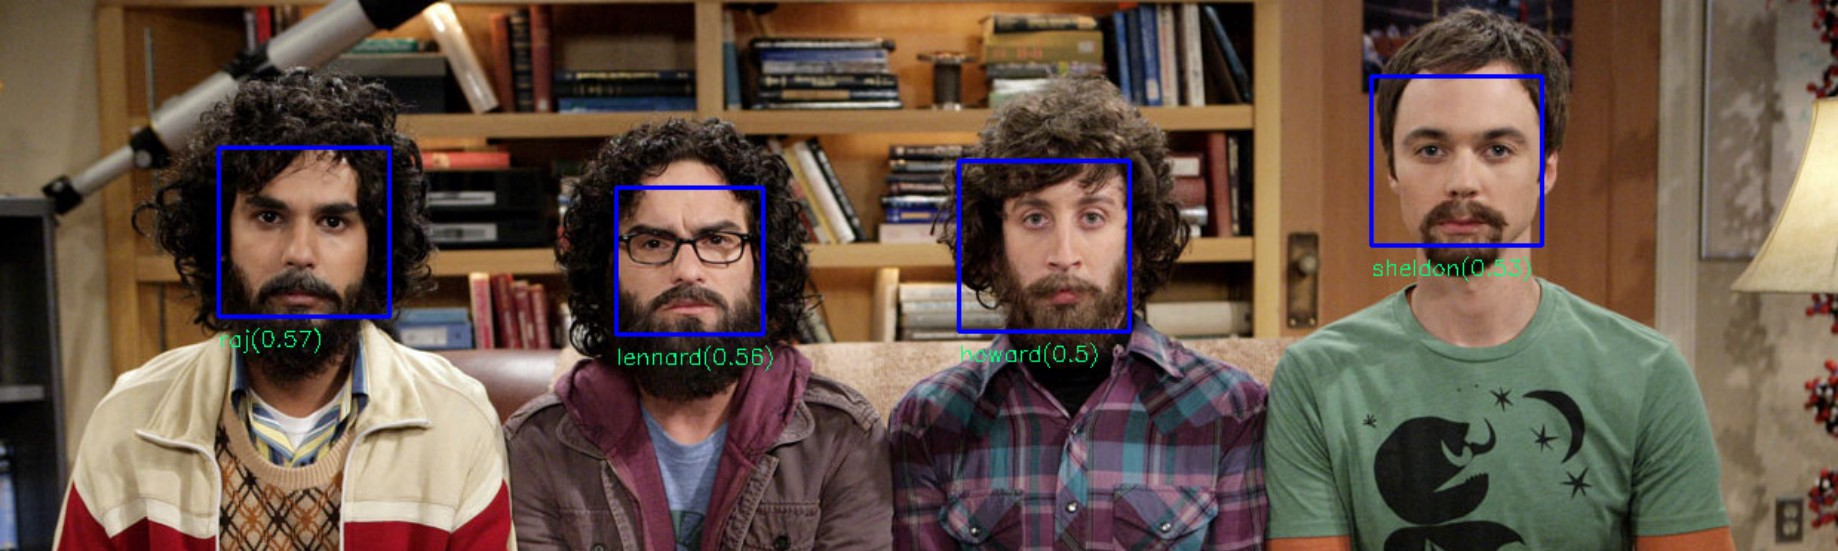 Node js + face-recognition js : Simple and Robust Face Recognition